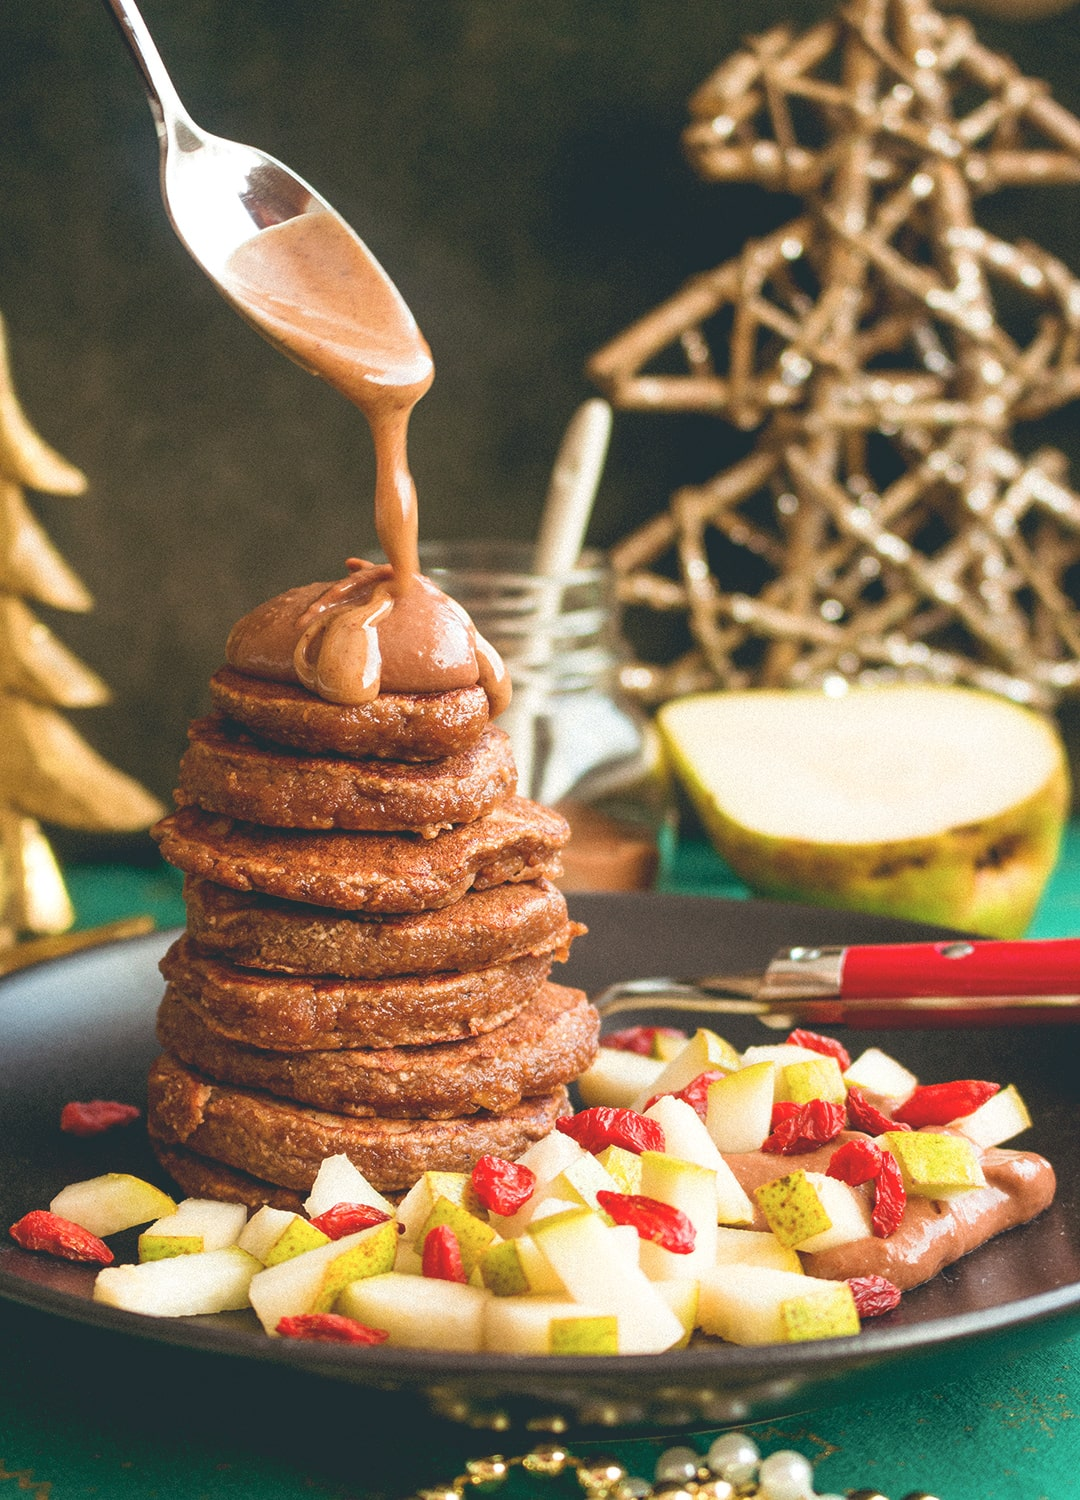 12 Christmas Recipes You Need to Make This Year: Gingerbread Pancakes with Chocolate Cream - a delicious Christmas recipe. I LOVE having this for breakfast during the holidays, it's definitely a favorite in our family. Gluten-free, dairy-free, and with an option to be made vegan! | thehealthfulideas.com